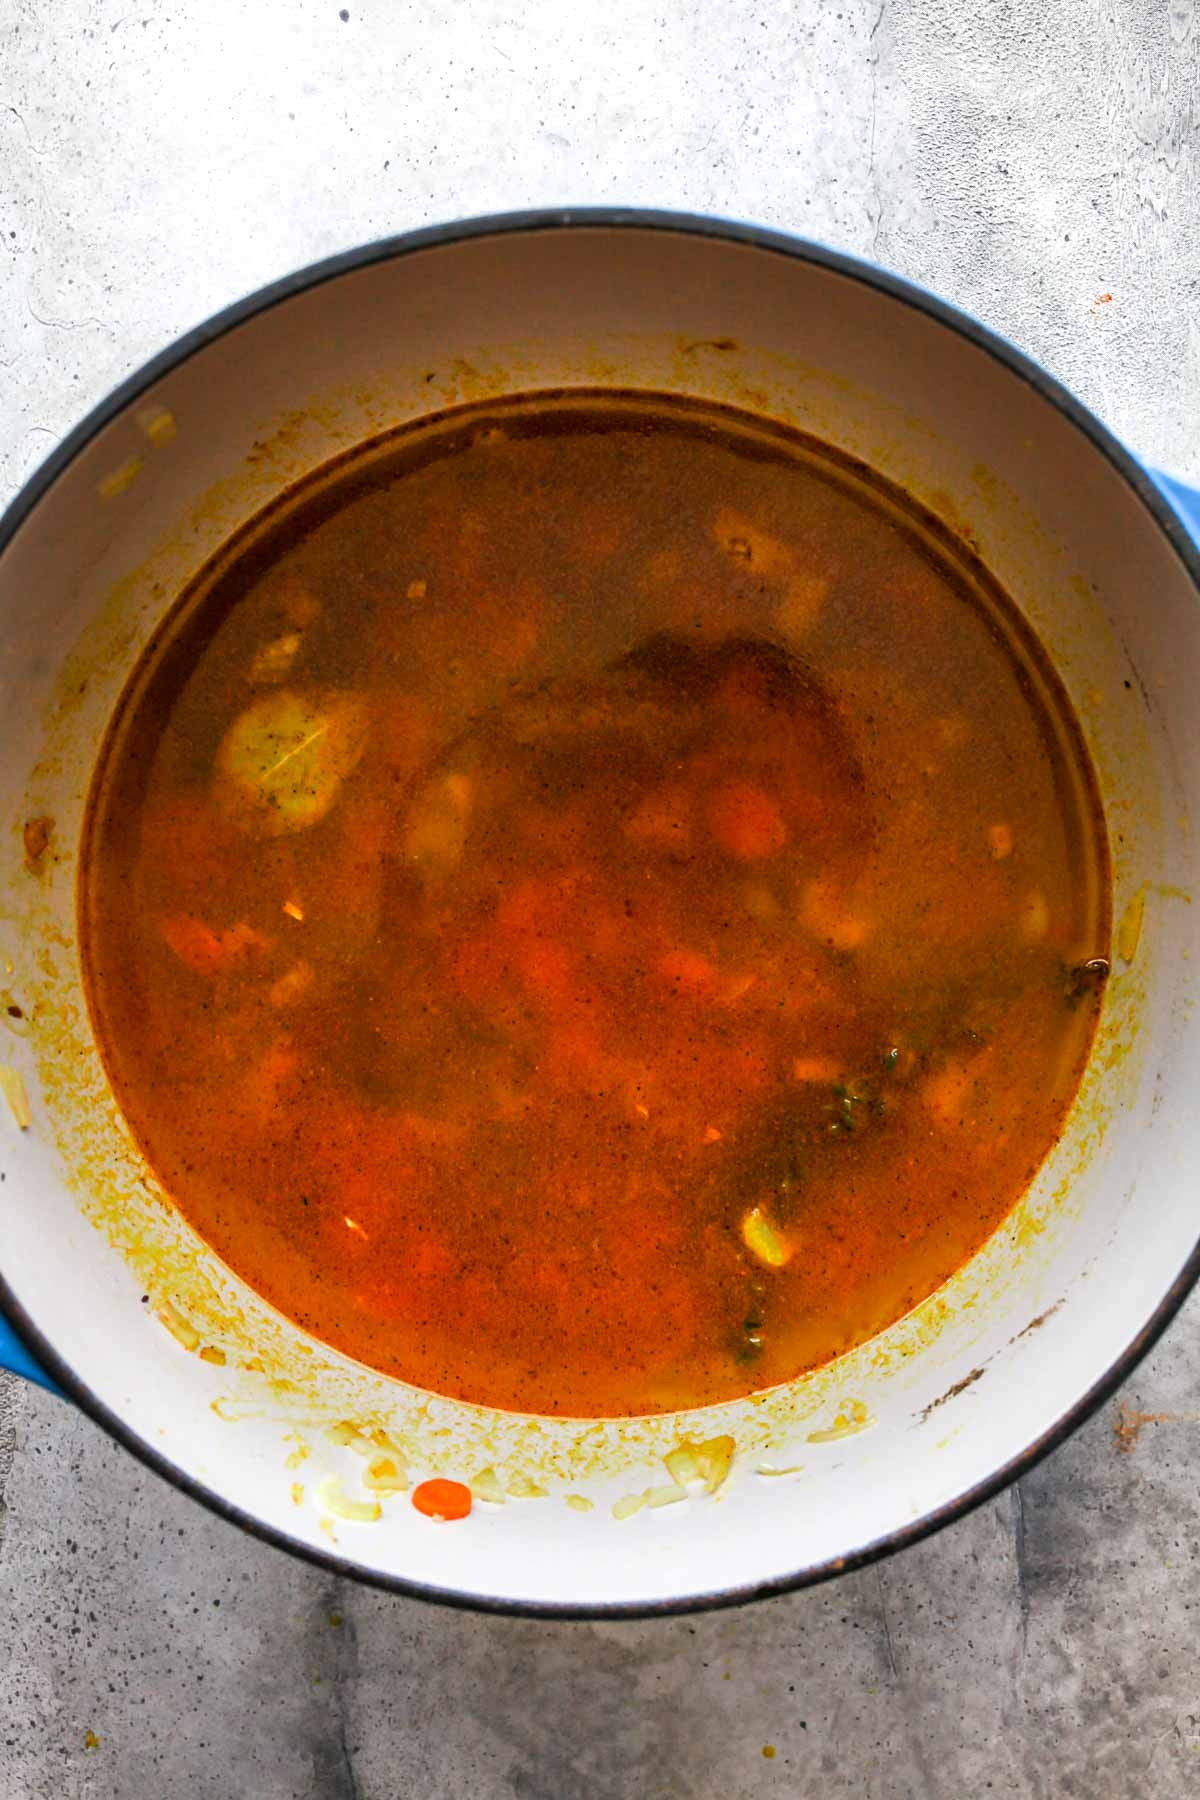 Broth being added to a Dutch oven